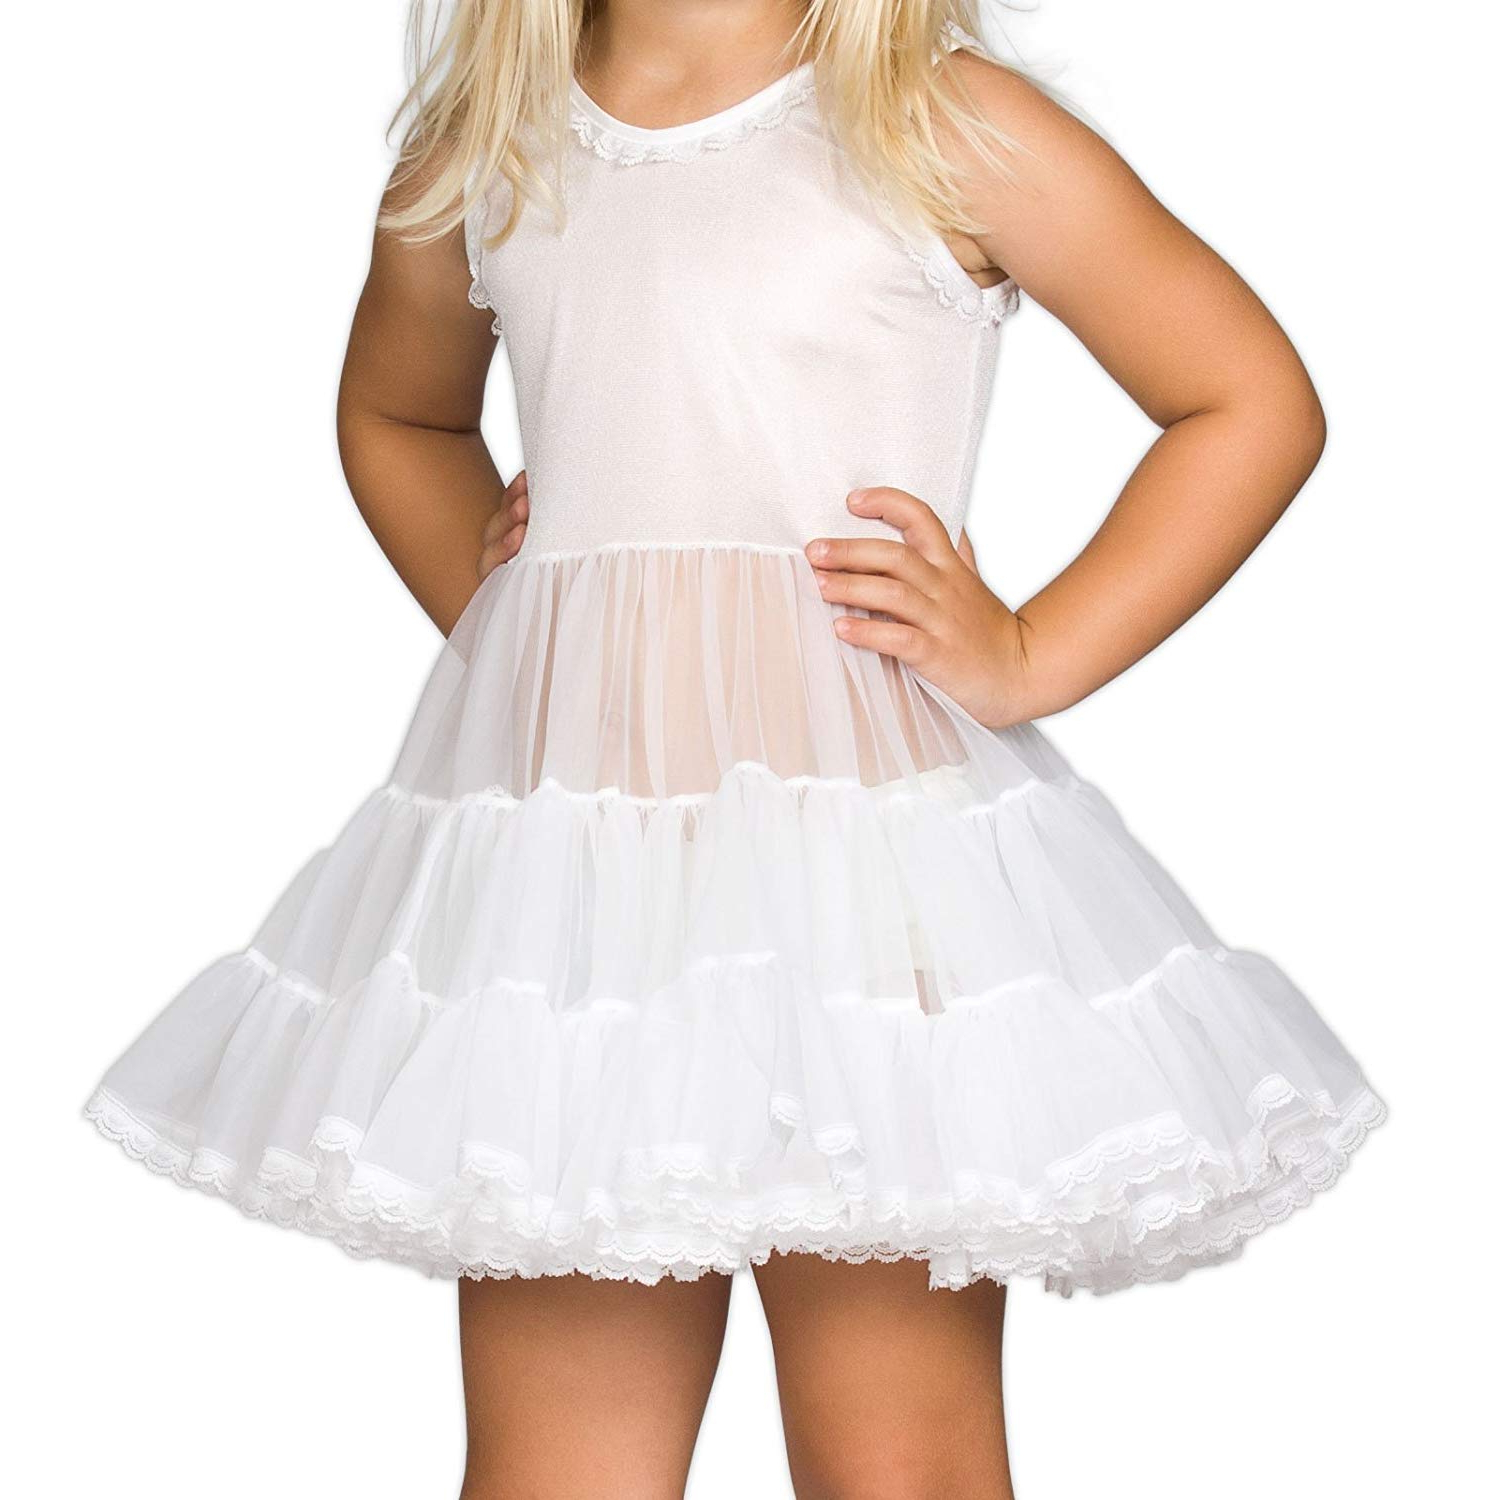 Most Recently Released White Ruffled Sheer Petticoat Tier Pairs Intended For Ic Collections Baby Girls White Bouffant Slip Petticoat, 6m – 24m (View 9 of 20)